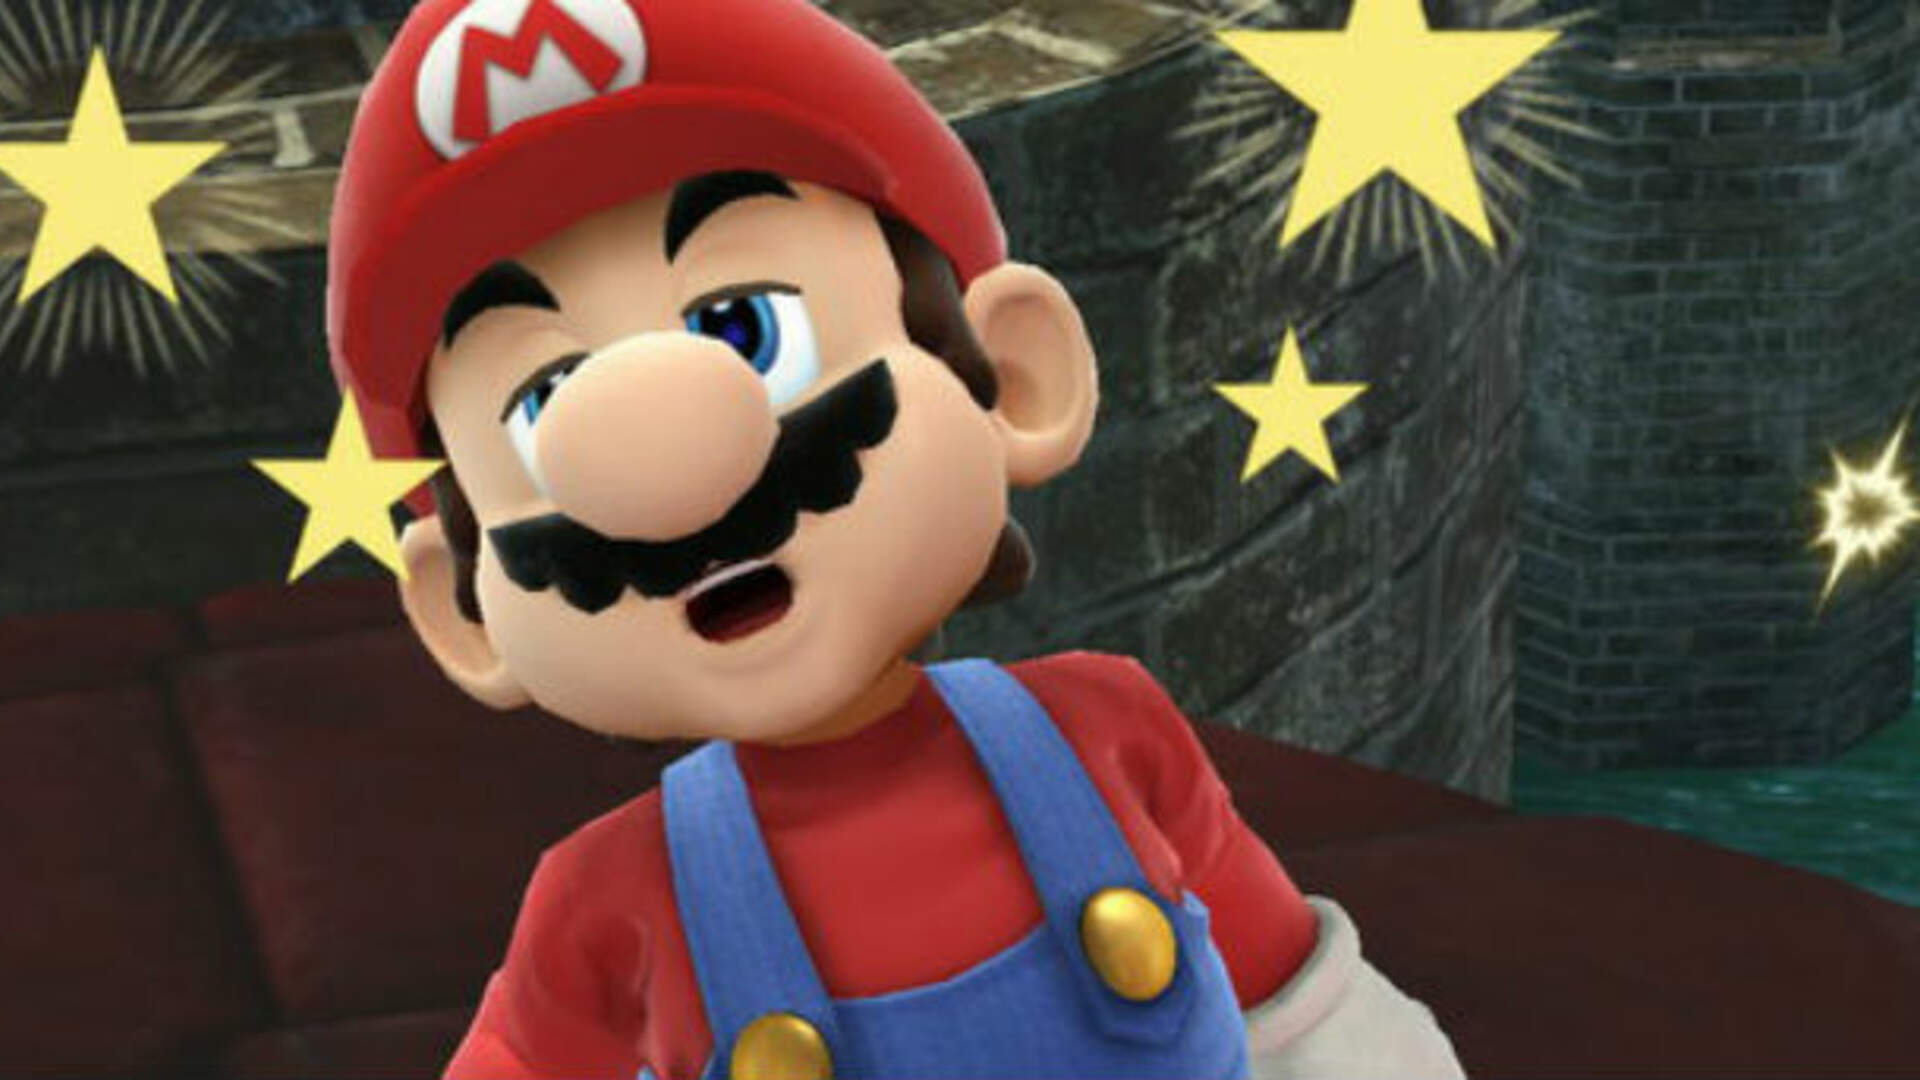 As Days Pass Without a January 2018 Nintendo Direct Announcement, Fans Start to Lose Their Grip on Sanity